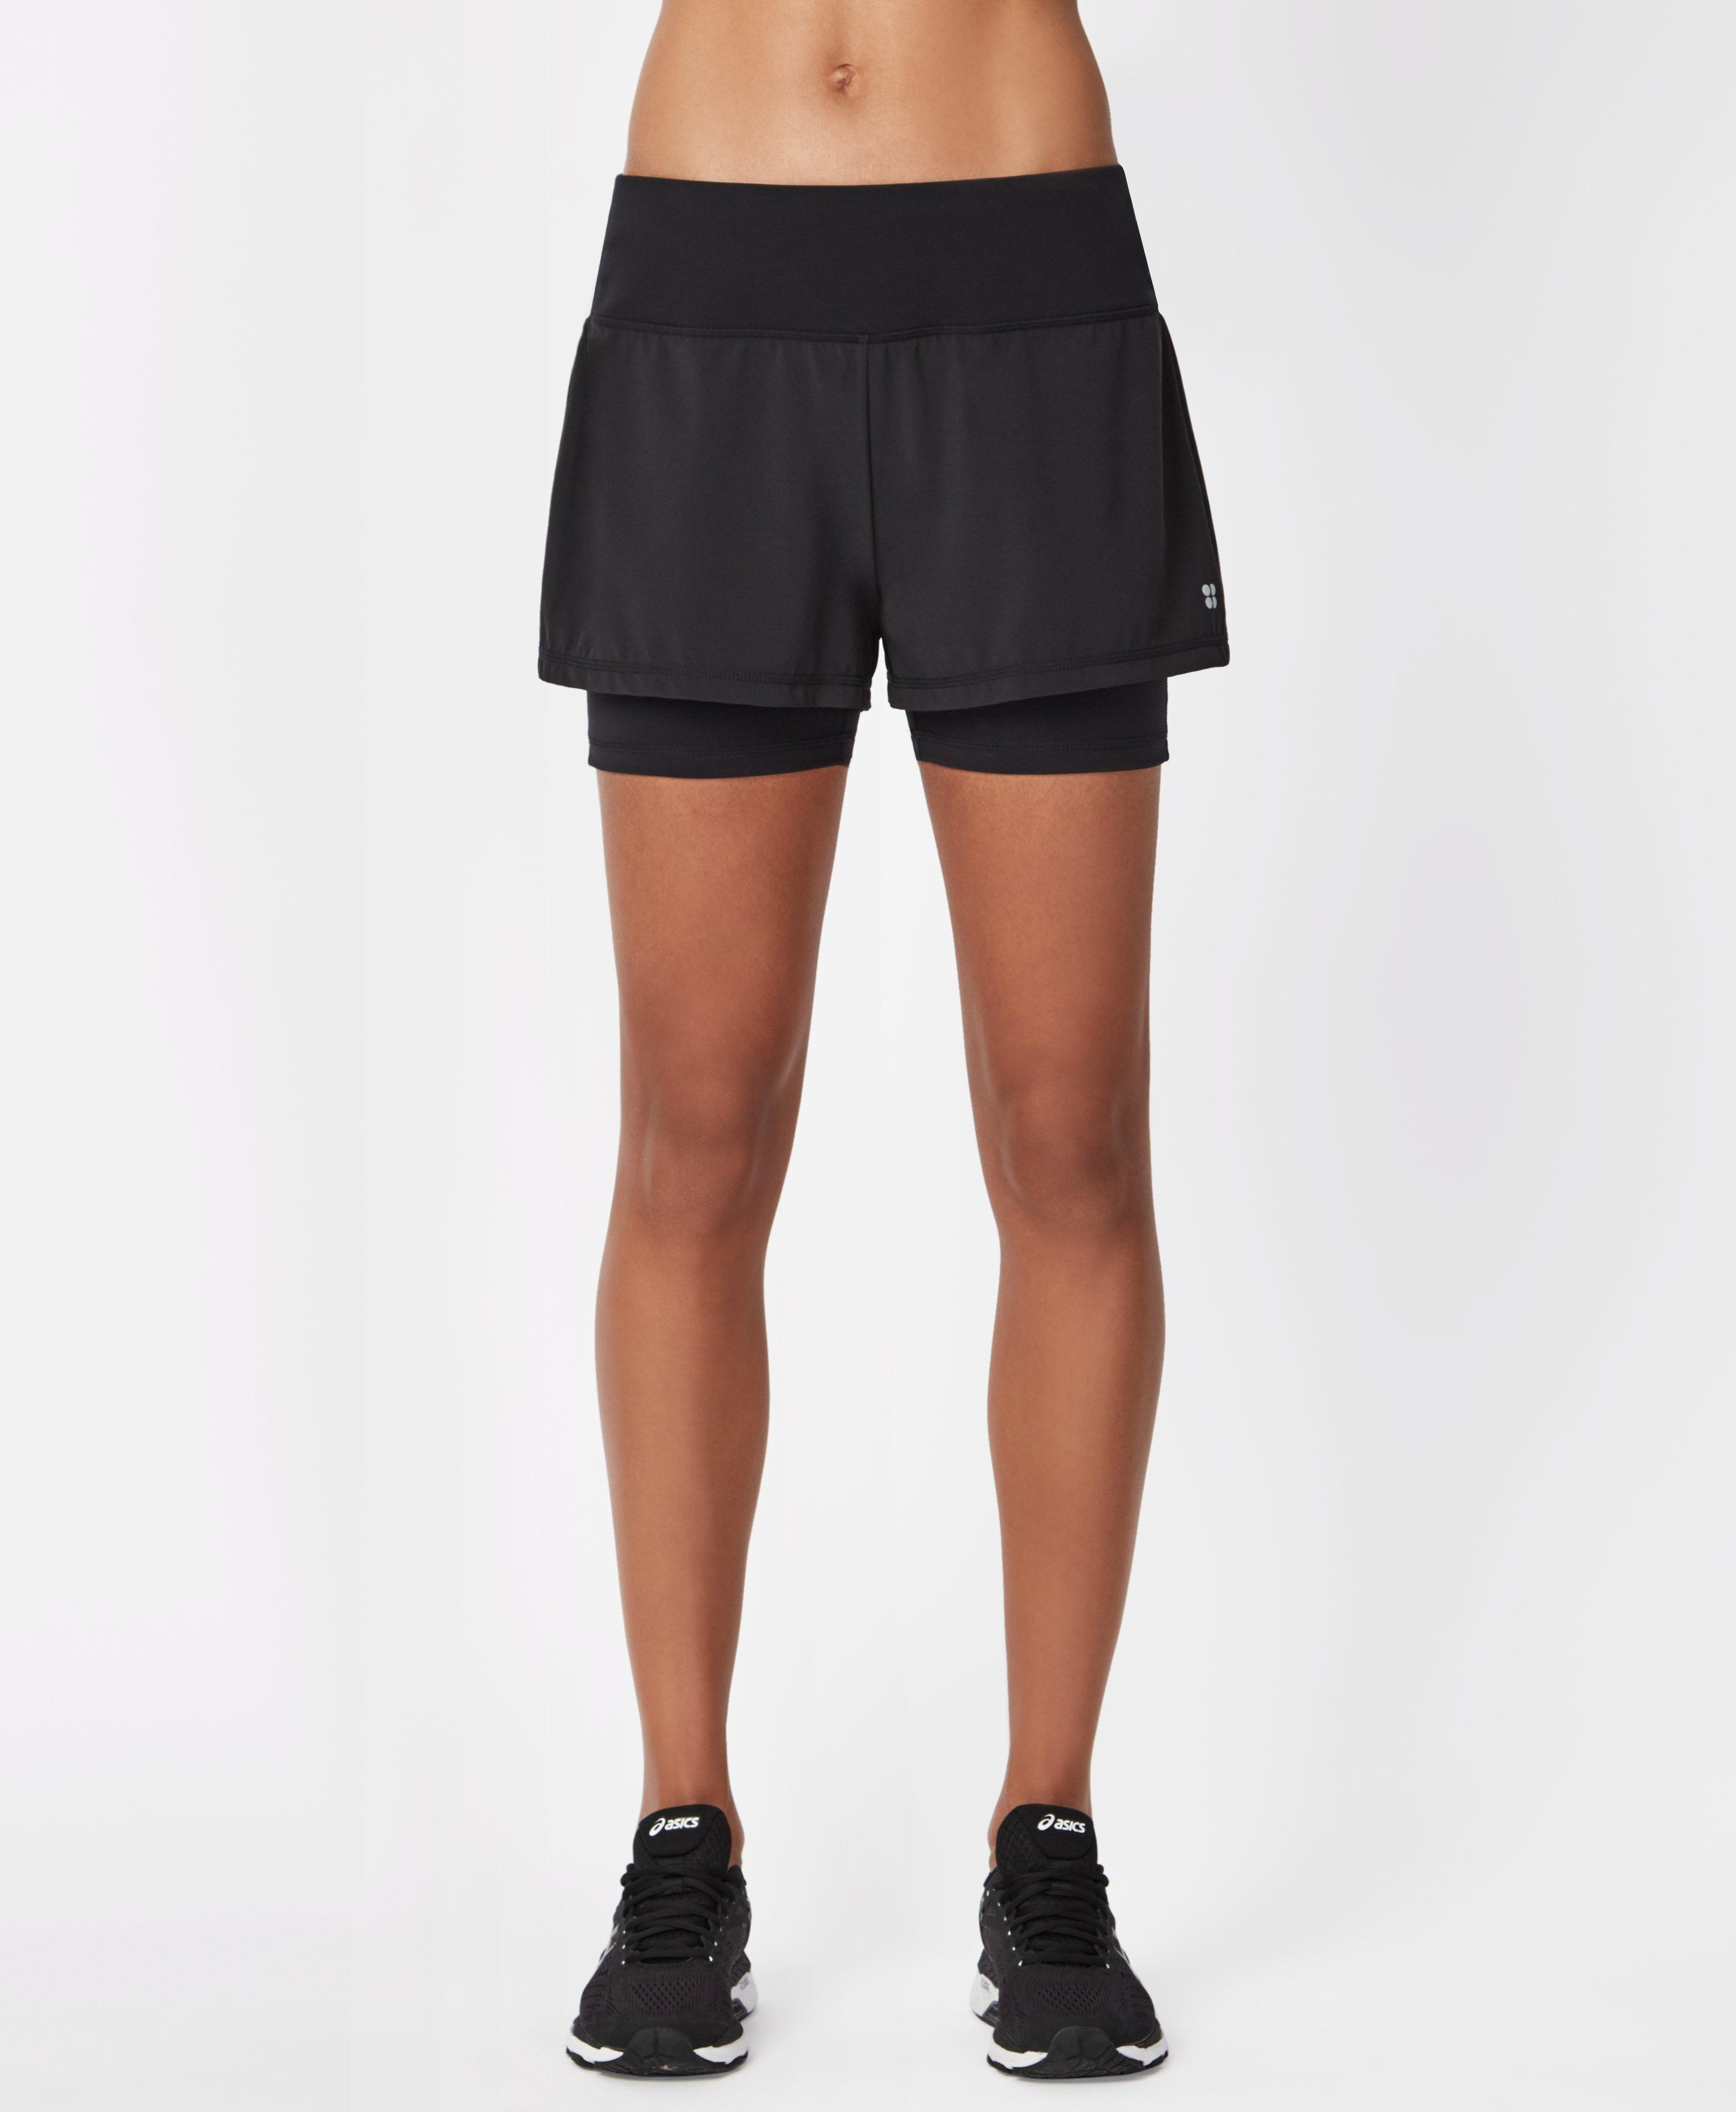 Looking for the perfect running shorts? We\\\'ve got you with these lightweight, sweat-wicking shorts with a supportive inner short for extra coverage and wide wasitband with adjustable drawcord.